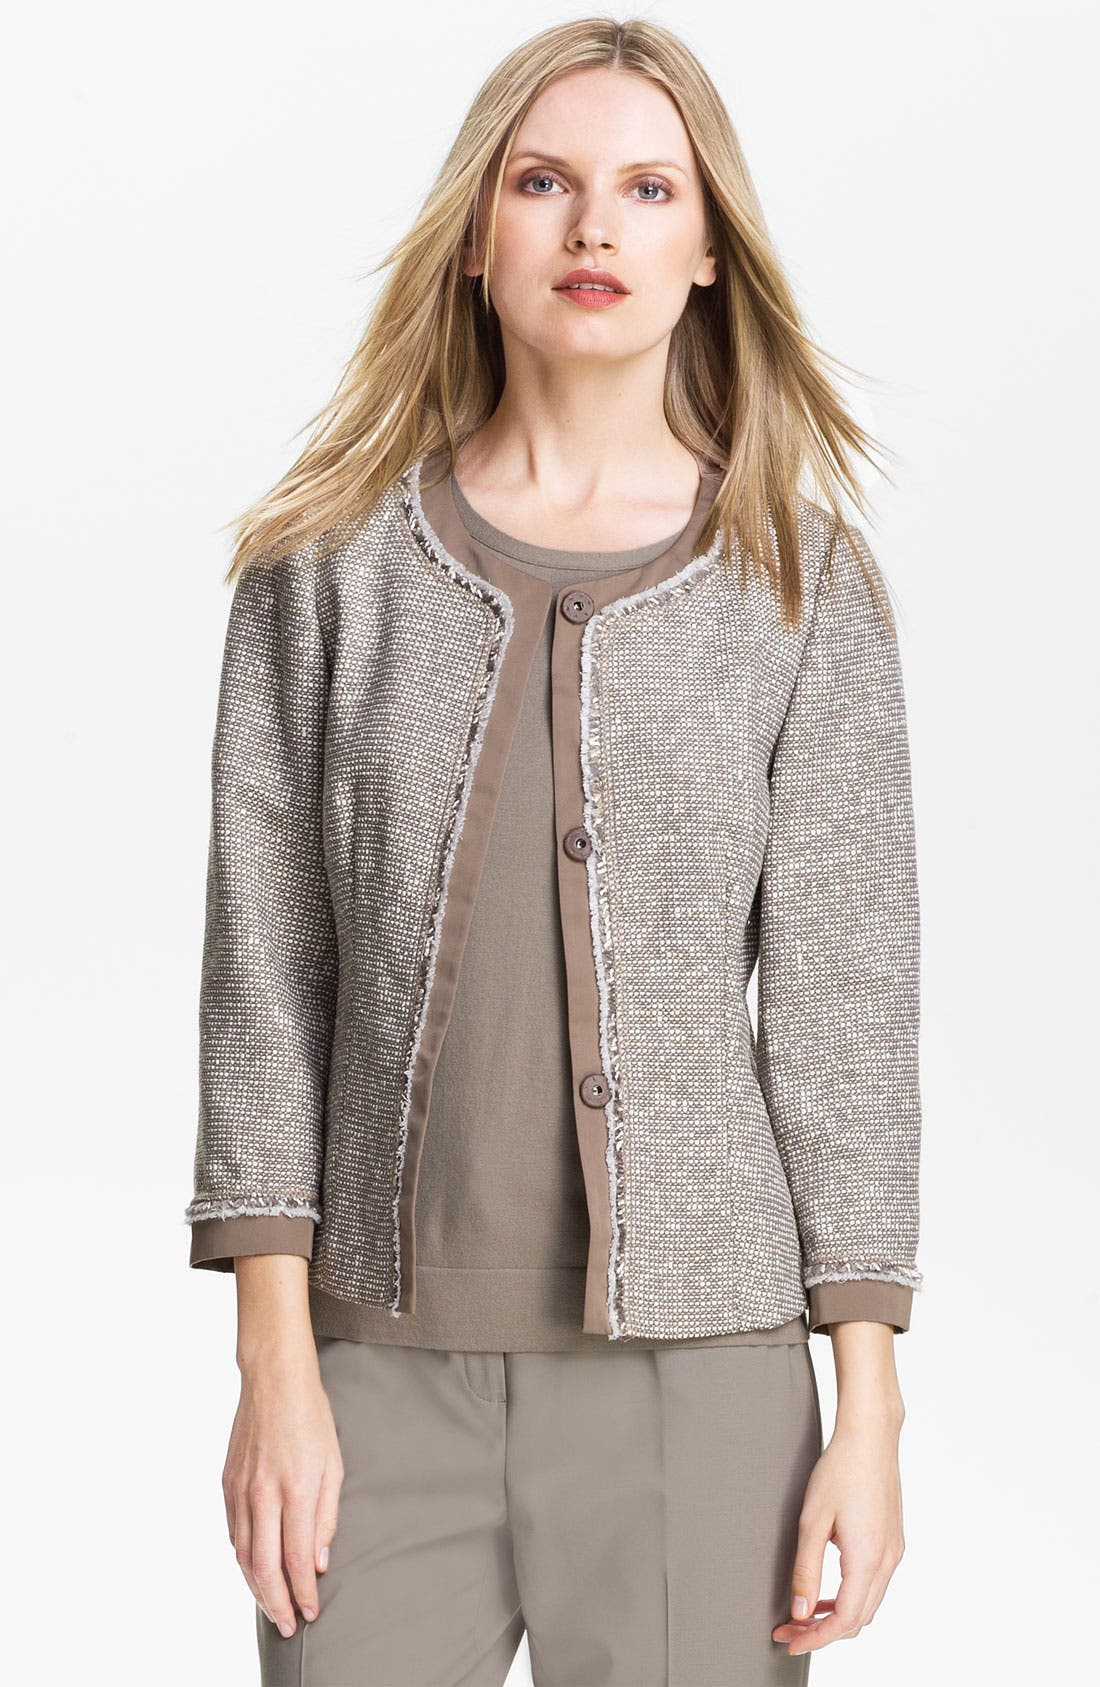 Alternate Image 1 Selected - Lafayette 148 New York 'Antonia' Tweed Jacket